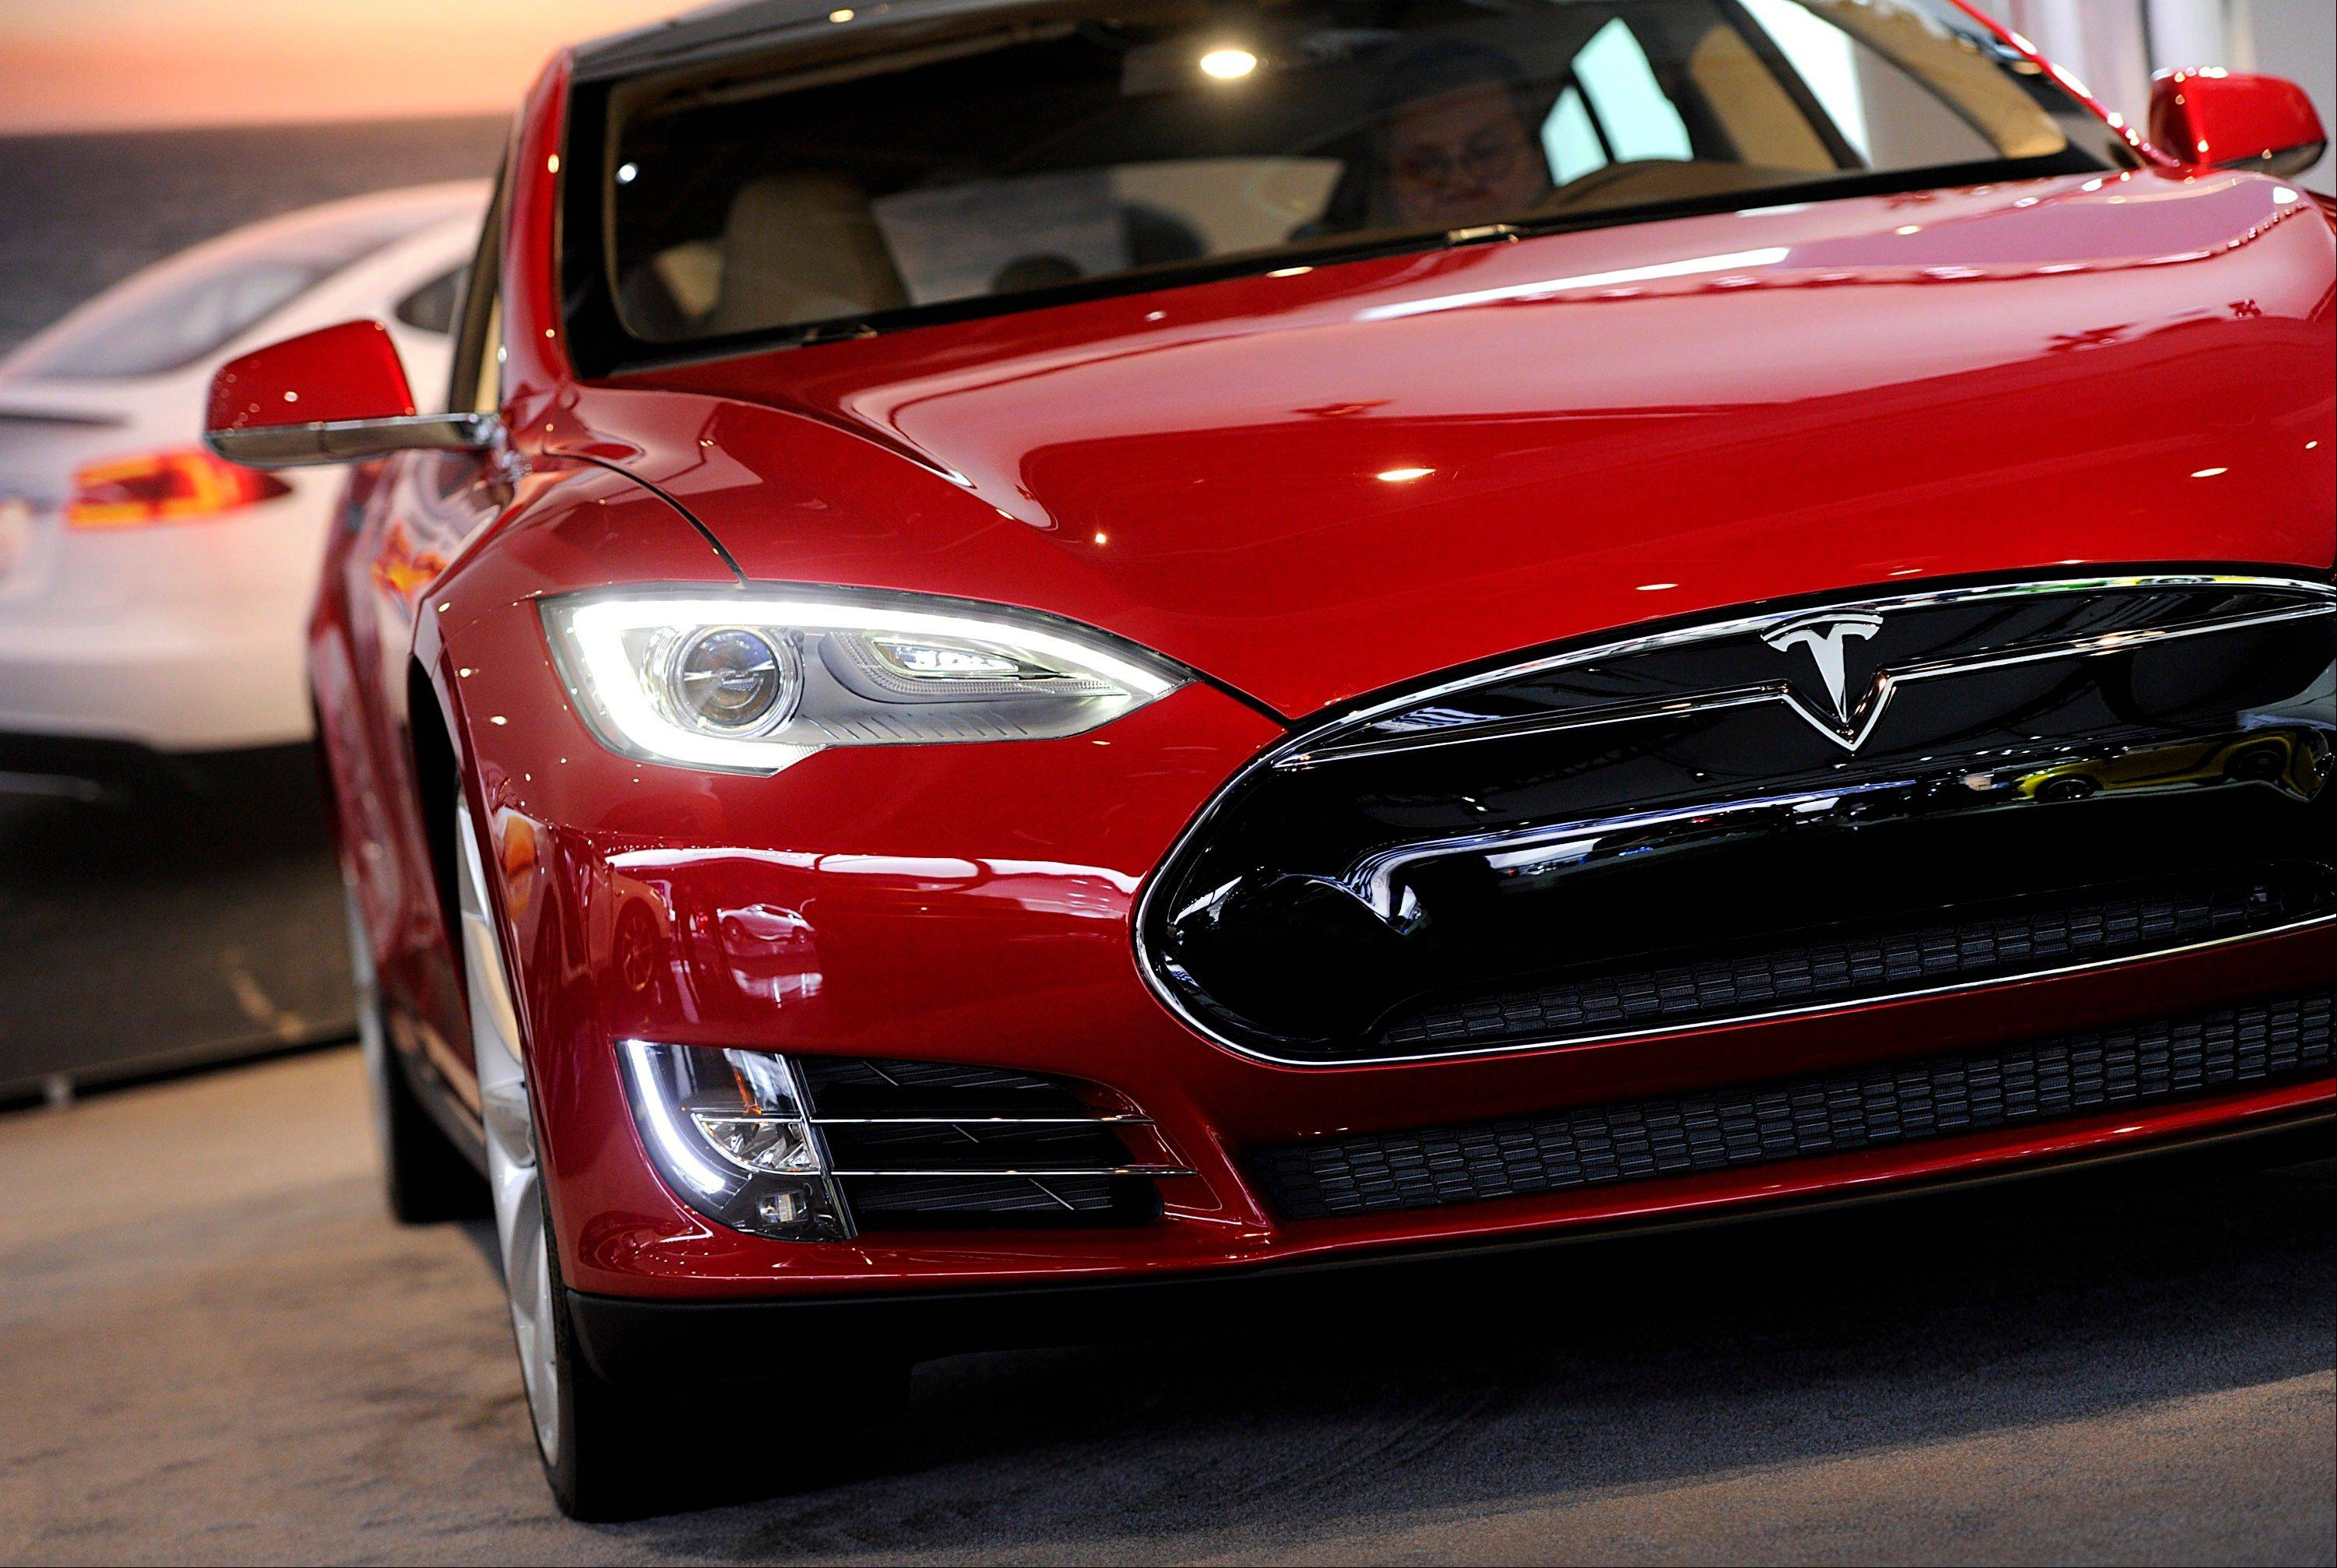 A Tesla Motors Inc. vehicle is displayed during the 2013 North American International Auto Show in Detroit on Jan. 15, 2013. Tesla, the top-selling maker of premium electric cars, said a customer was unhurt in a crash and fire this month in Mexico in which a Model S struck a concrete barrier.